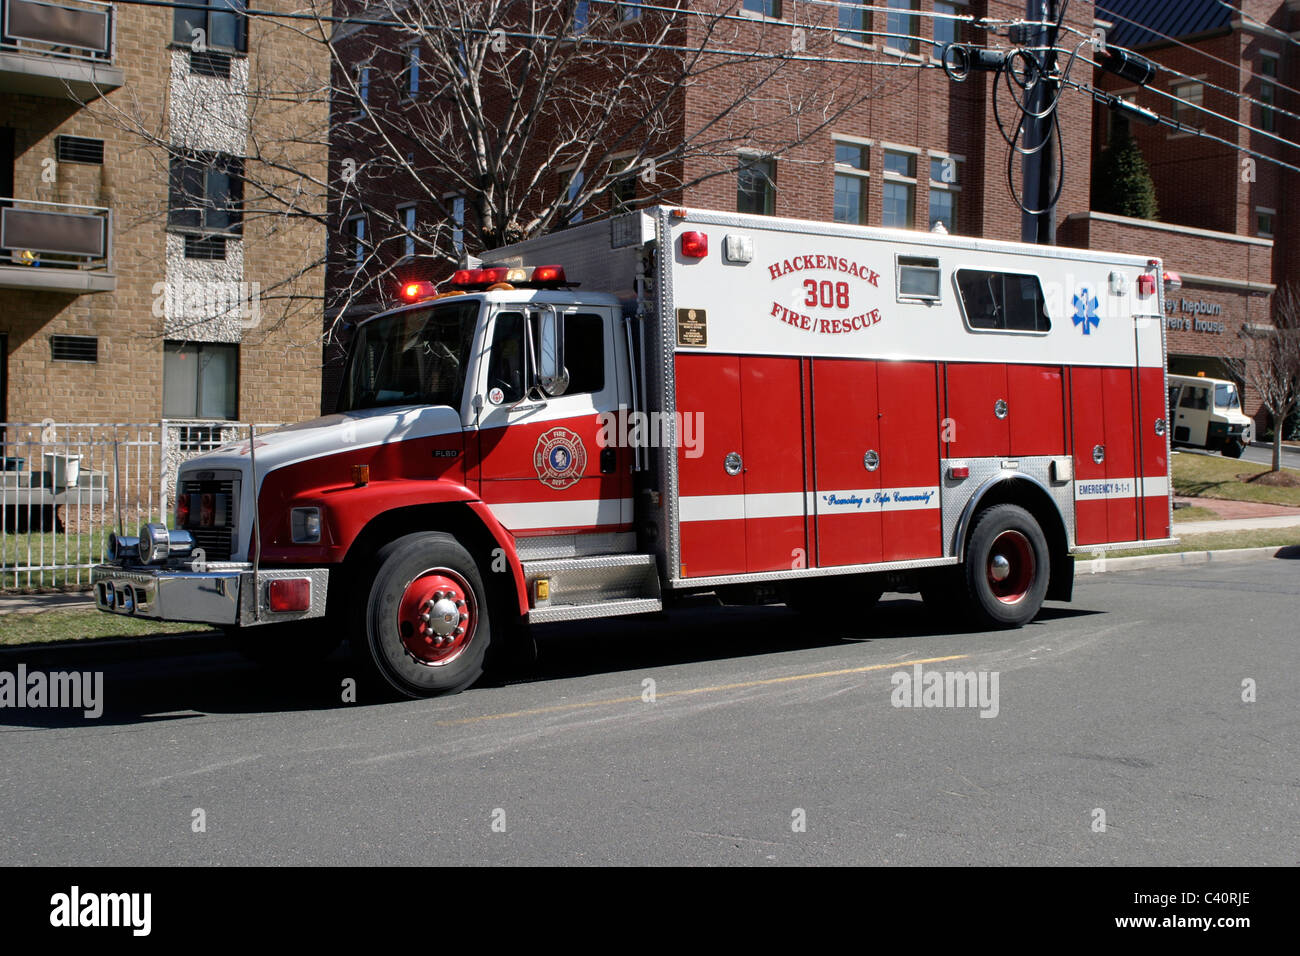 1995 Freightliner / Marion  Rescue 308 Hackensack Fire Department - Stock Image